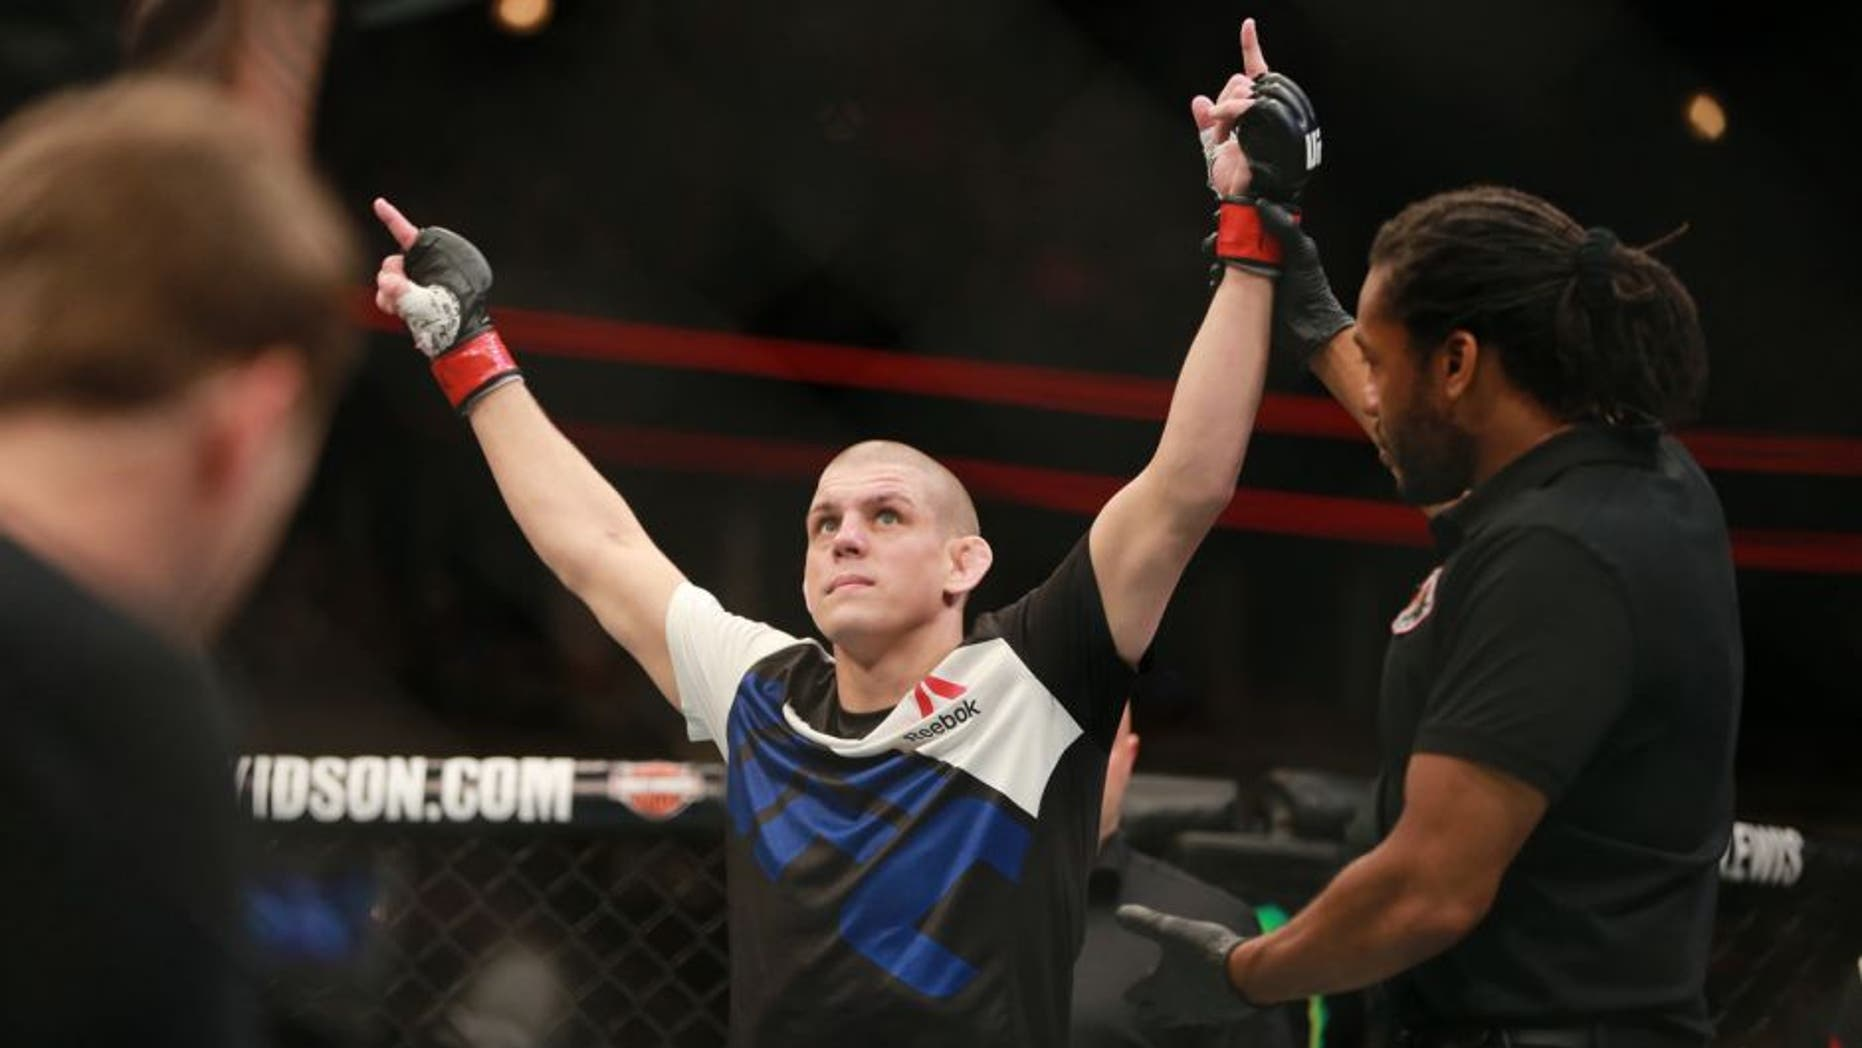 CHICAGO, IL - JULY 25: Joe Lauzon celebrates after defeating Takanori Gomi in their lightweight bout during the UFC event at the United Center on July 25, 2015 in Chicago, Illinois. (Photo by Rey Del Rio/Zuffa LLC/Zuffa LLC via Getty Images)